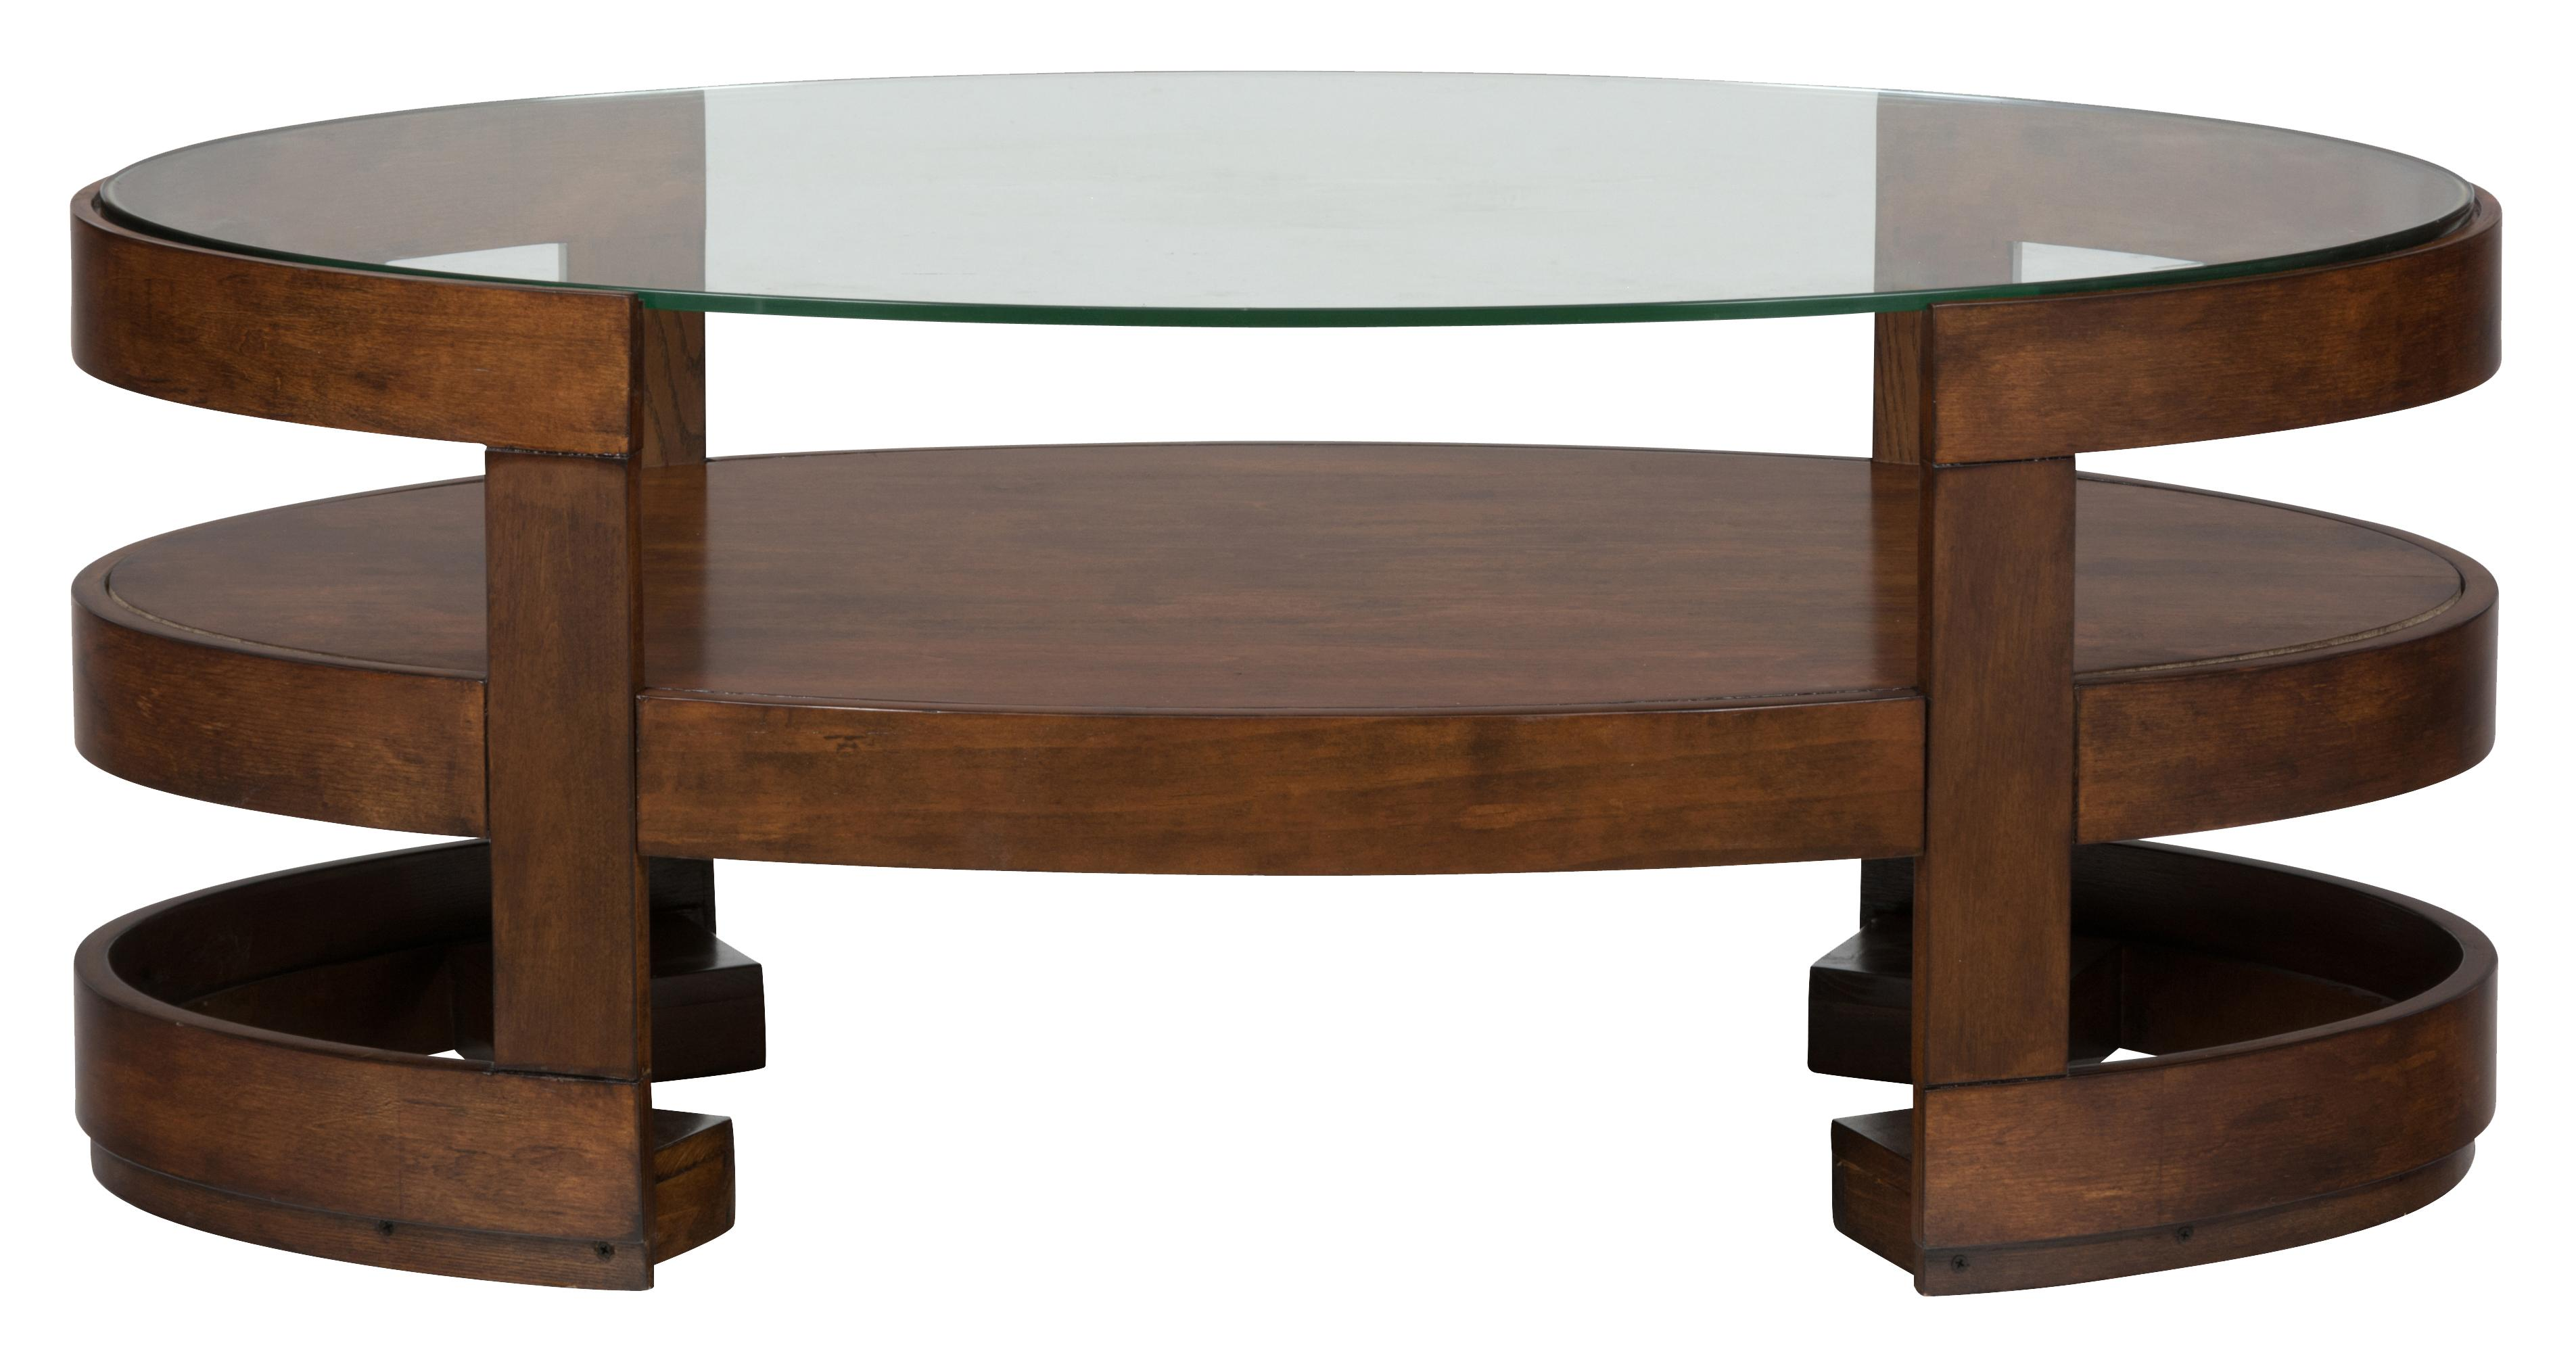 Jofran Avon Birch Oval Cocktail Table with Glass Top - Item Number: 348-1